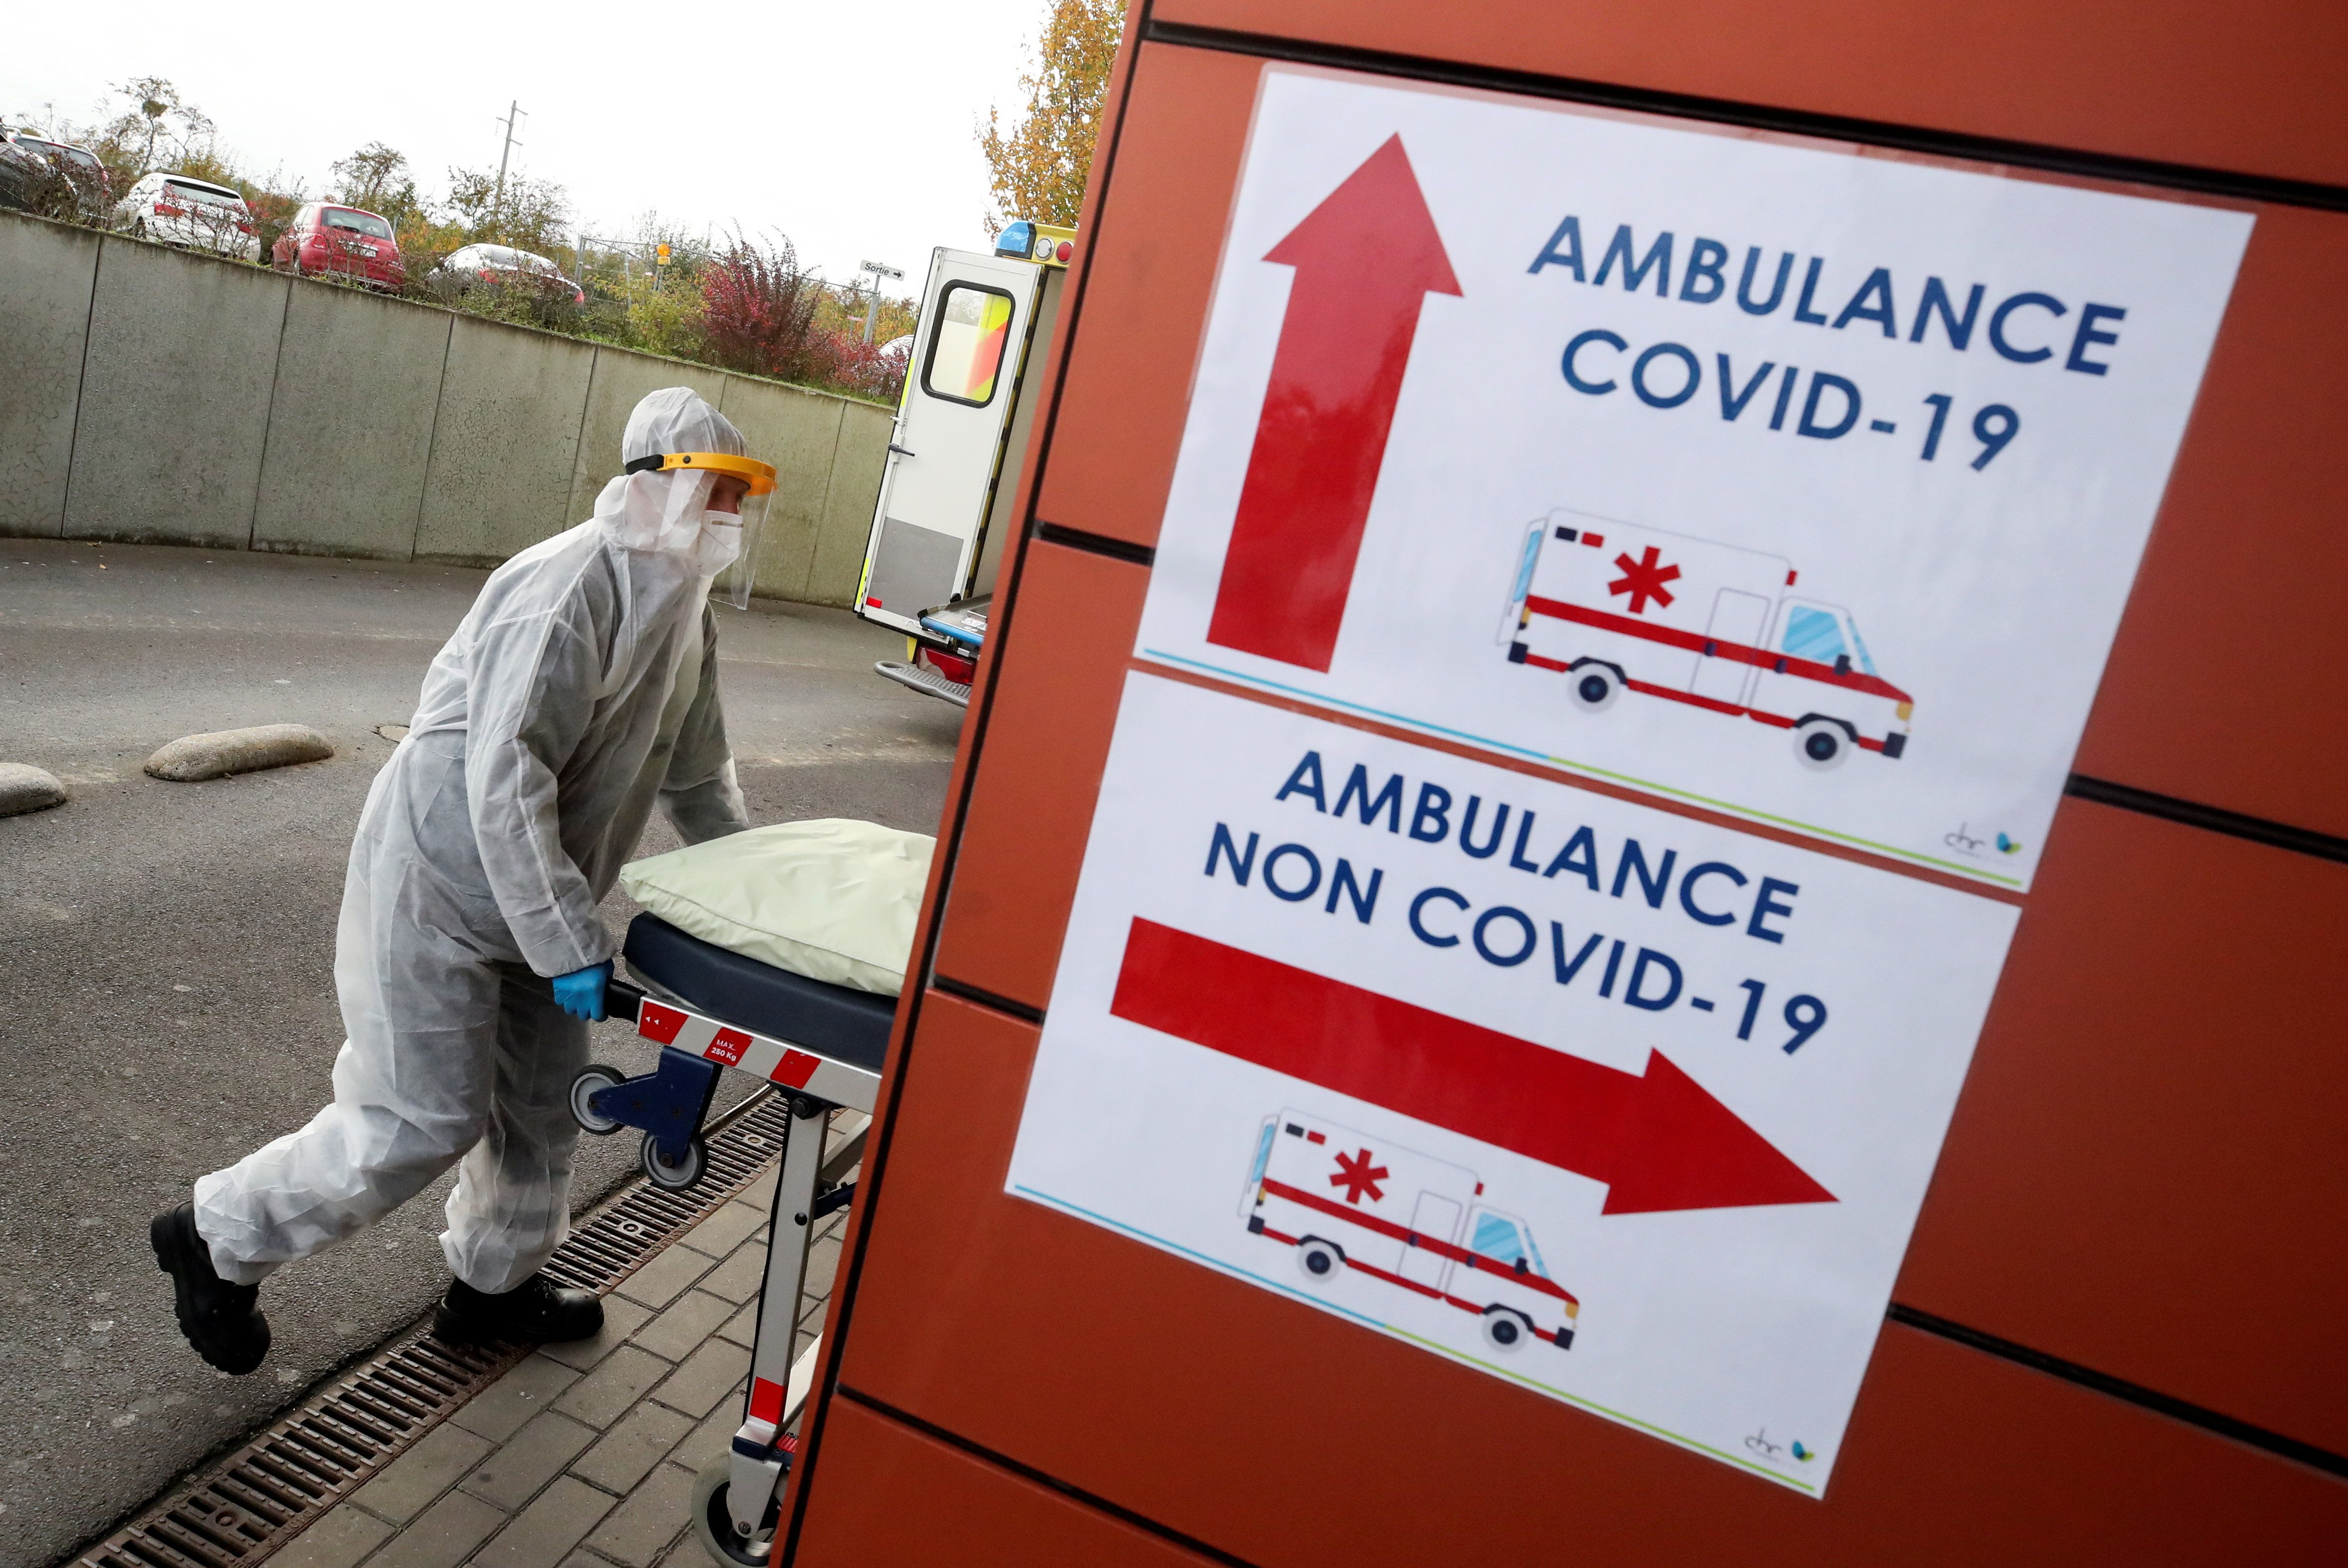 A member of the medical personnel wearing personal protective equipment (PPE) pushes a stretcher outside the CHR Sambre-Meuse hospital, amid the coronavirus disease (COVID-19) outbreak, in Auvelais, Belgium October 28, 2020